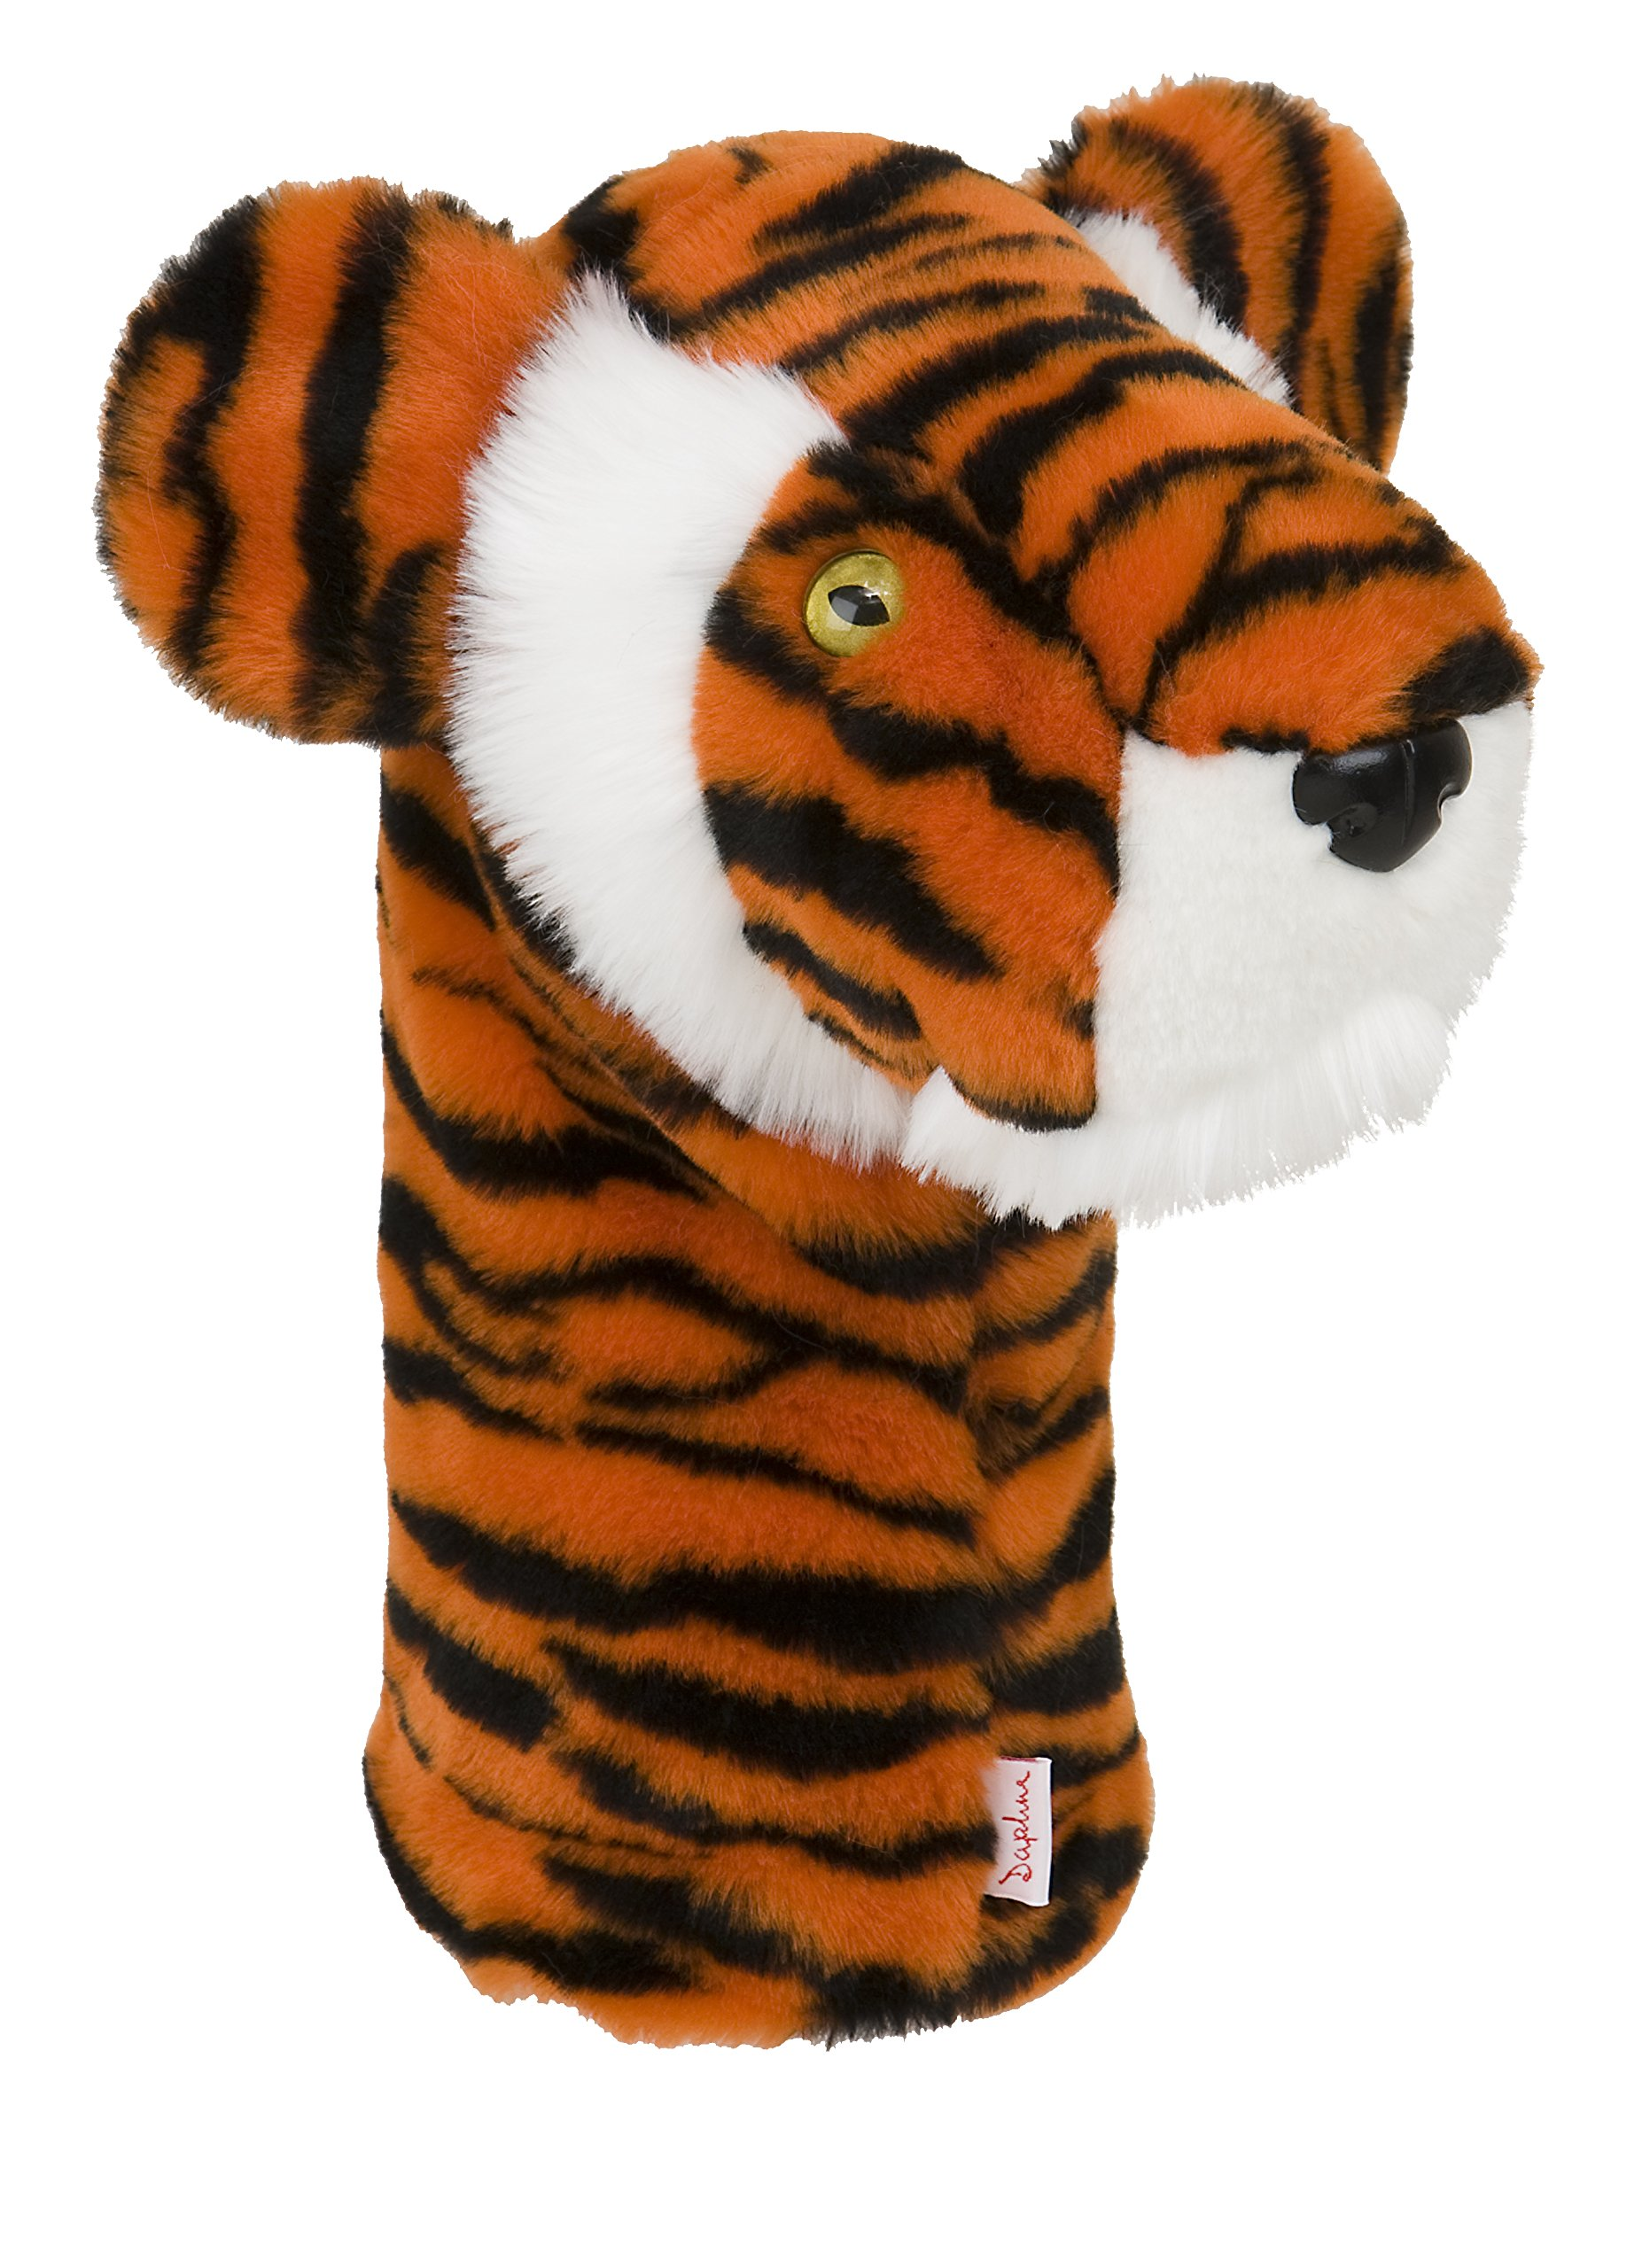 Oversized Tiger Golf Head Cover